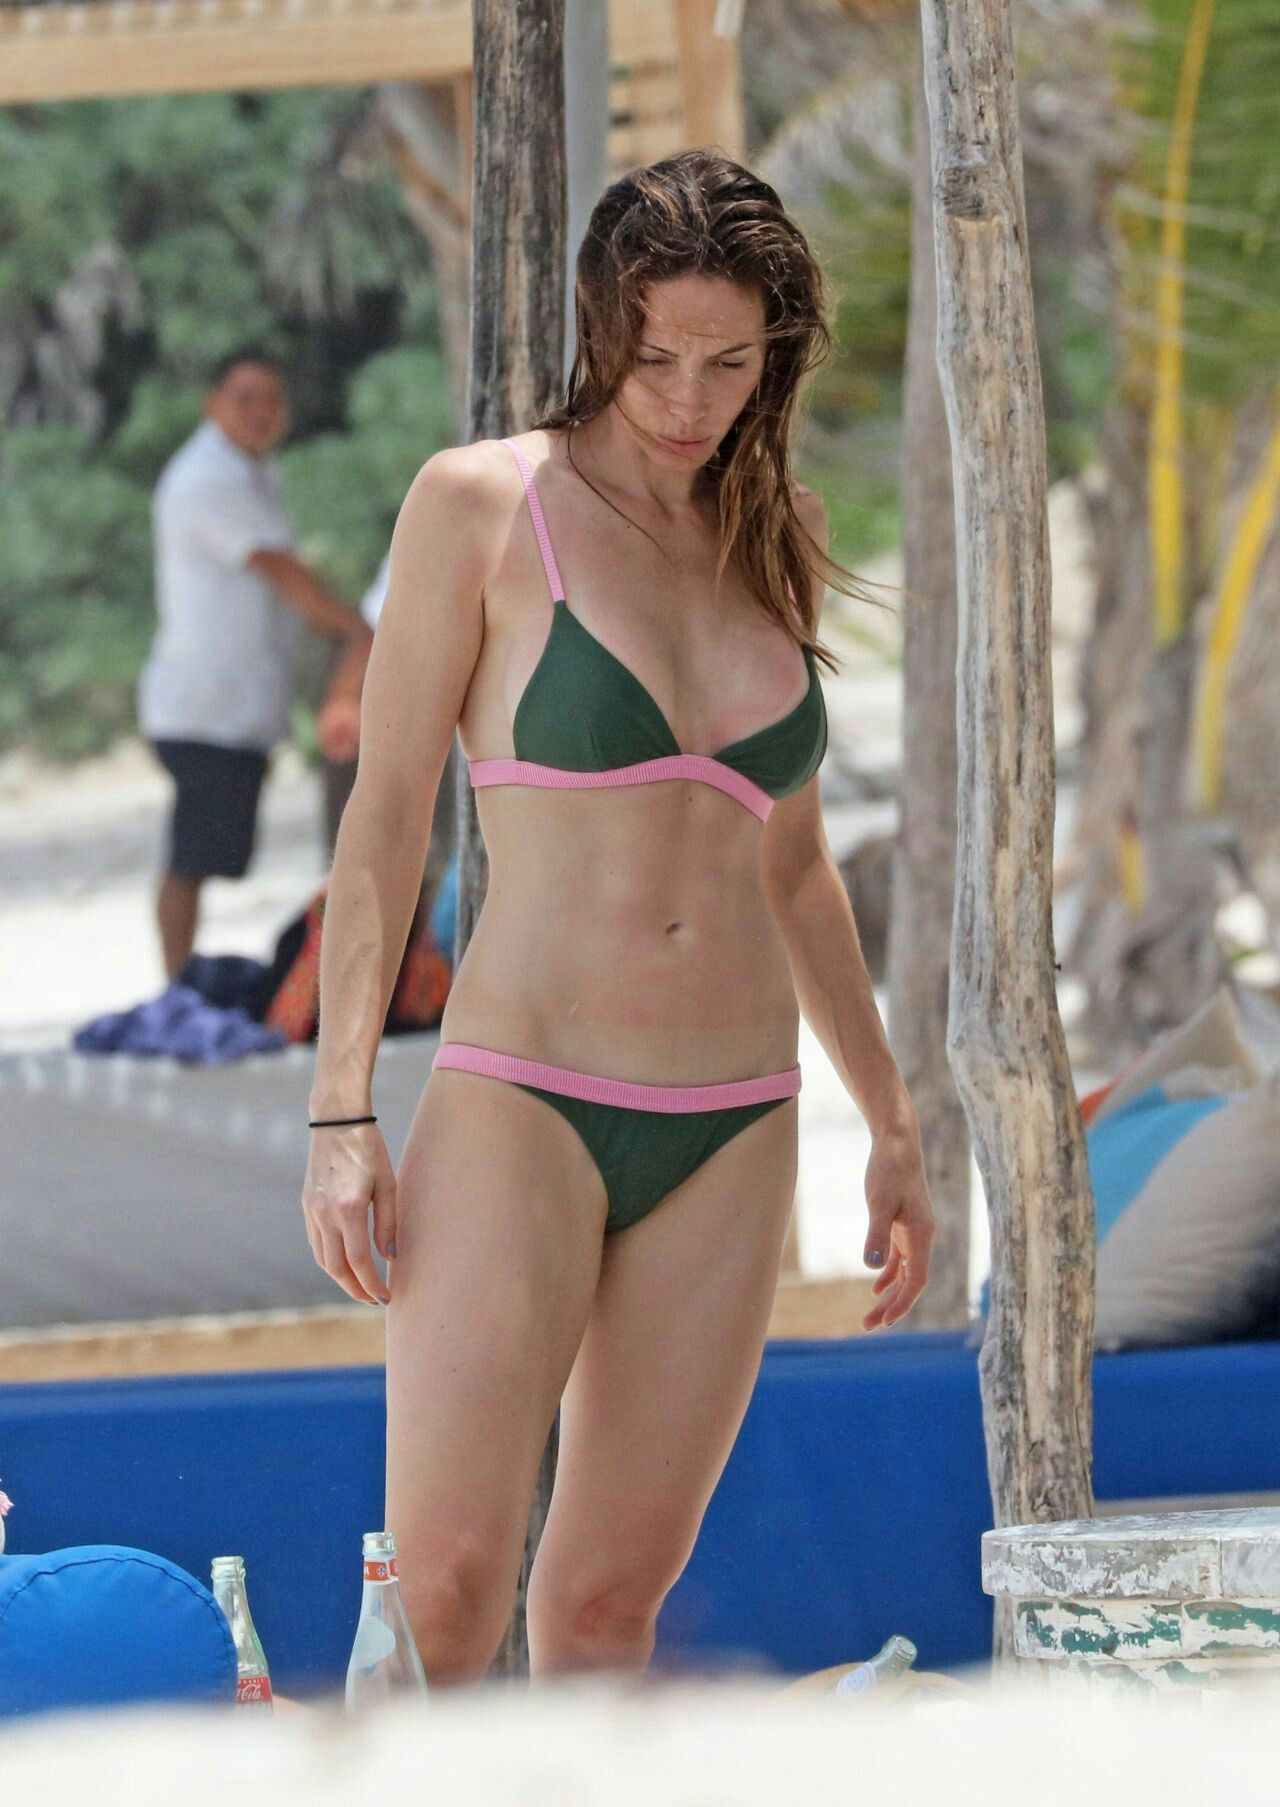 Bikini Whitney Cummings naked (32 foto and video), Topless, Bikini, Selfie, braless 2015